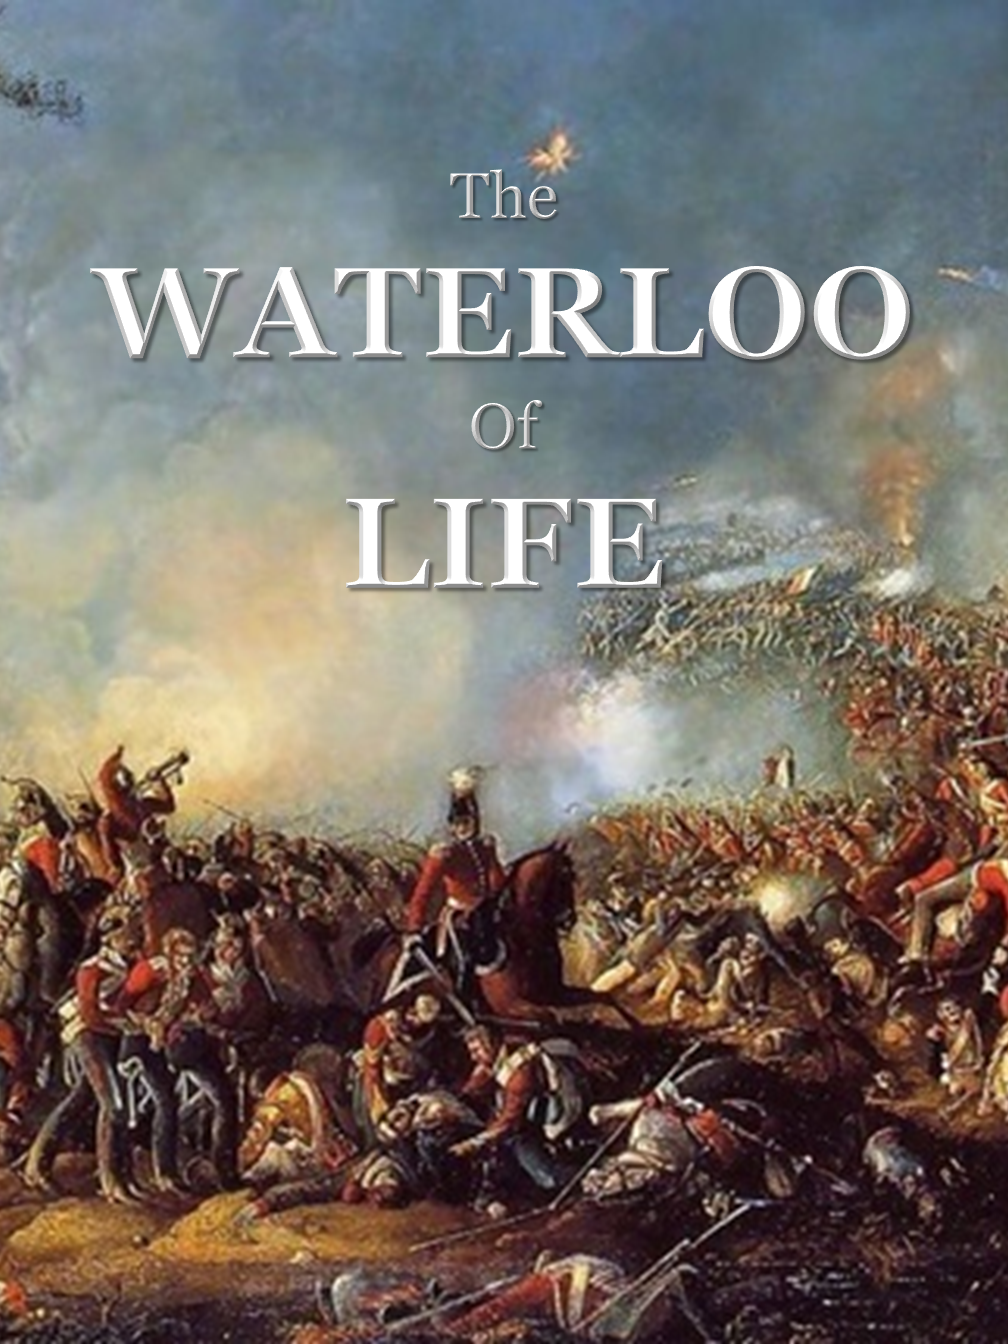 The Waterloo of Life